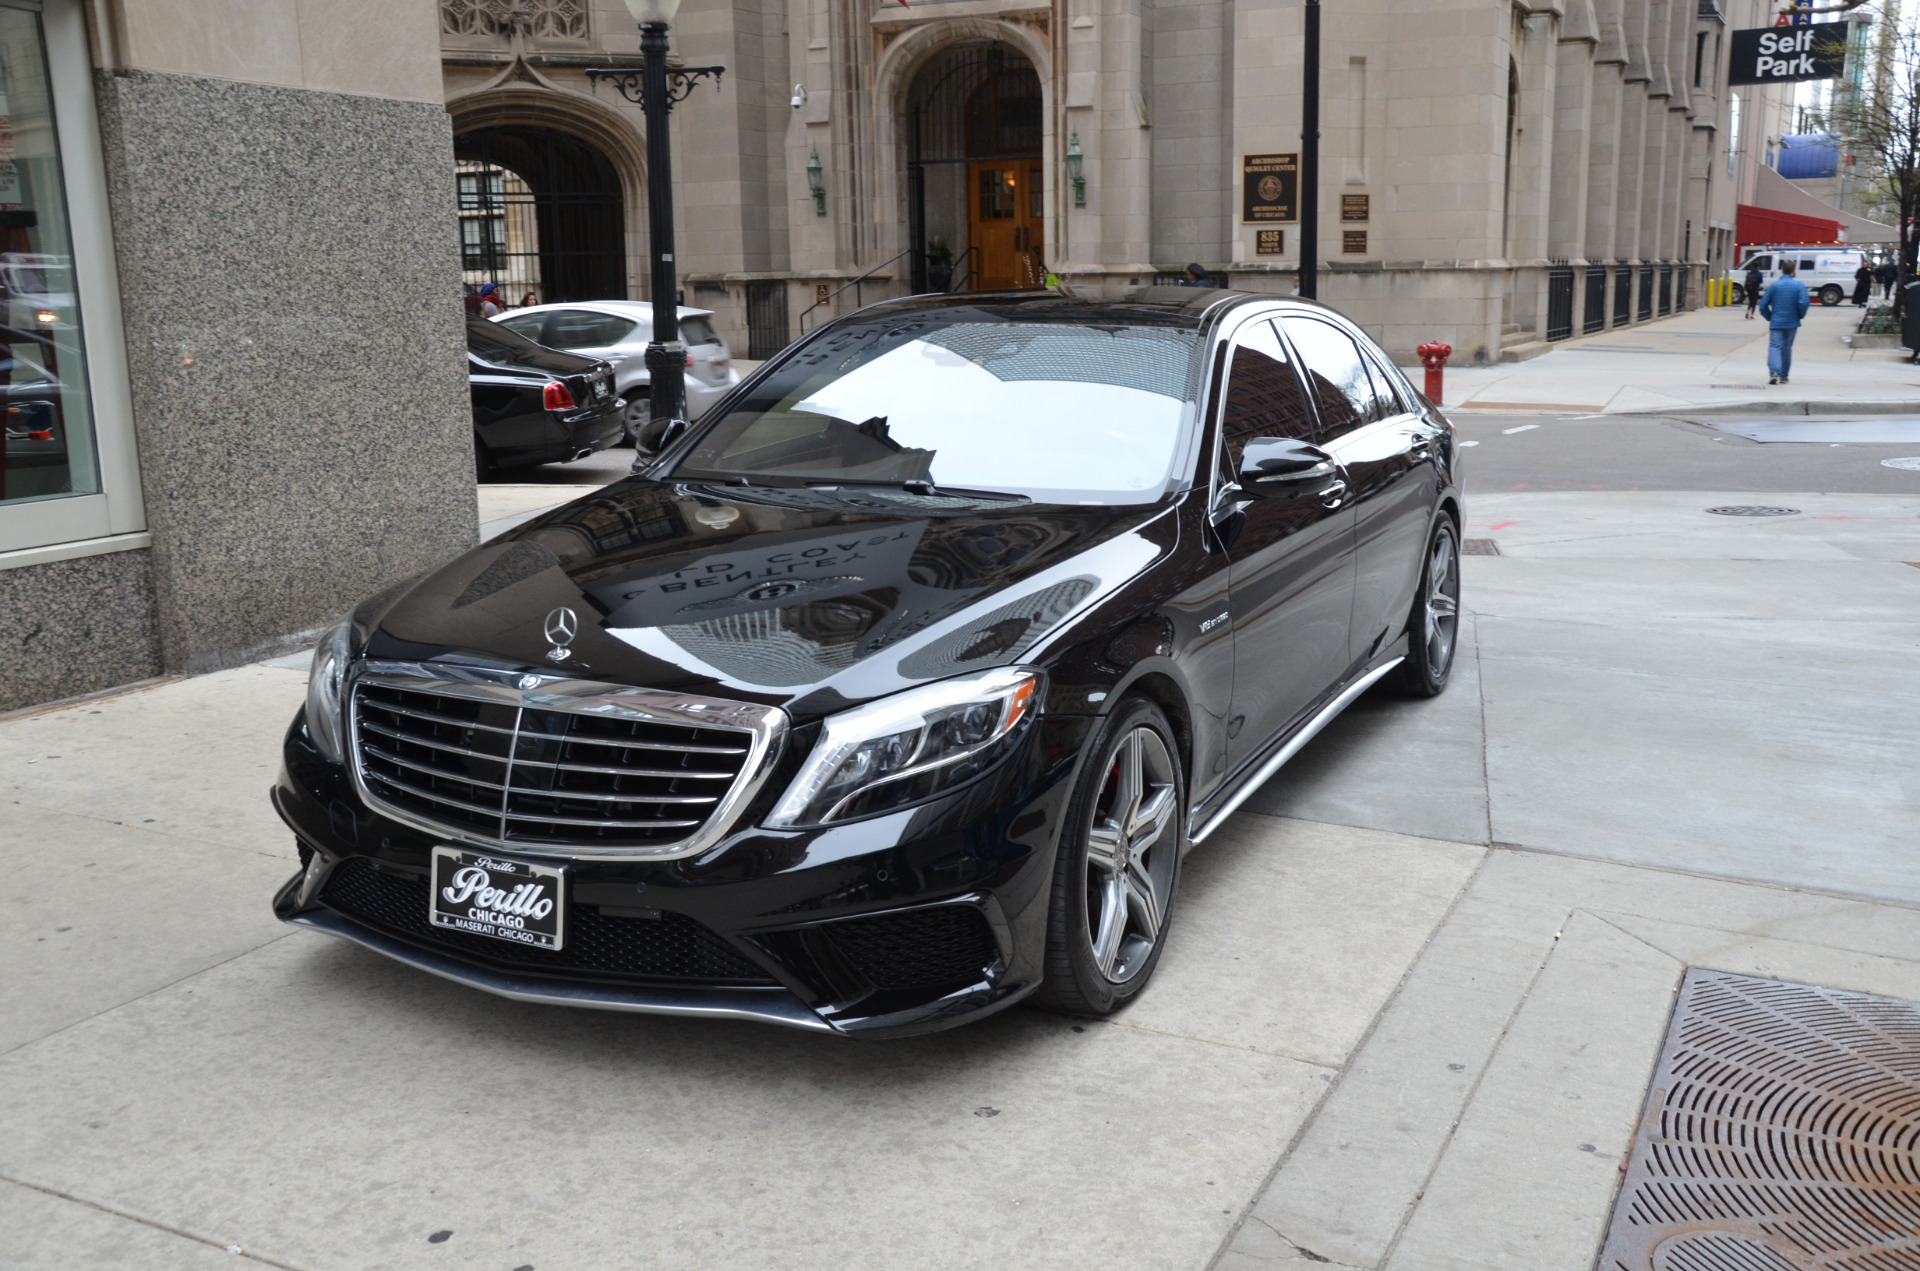 2014 mercedes benz s class s63 amg stock b778a s for for Mercedes benz parts chicago